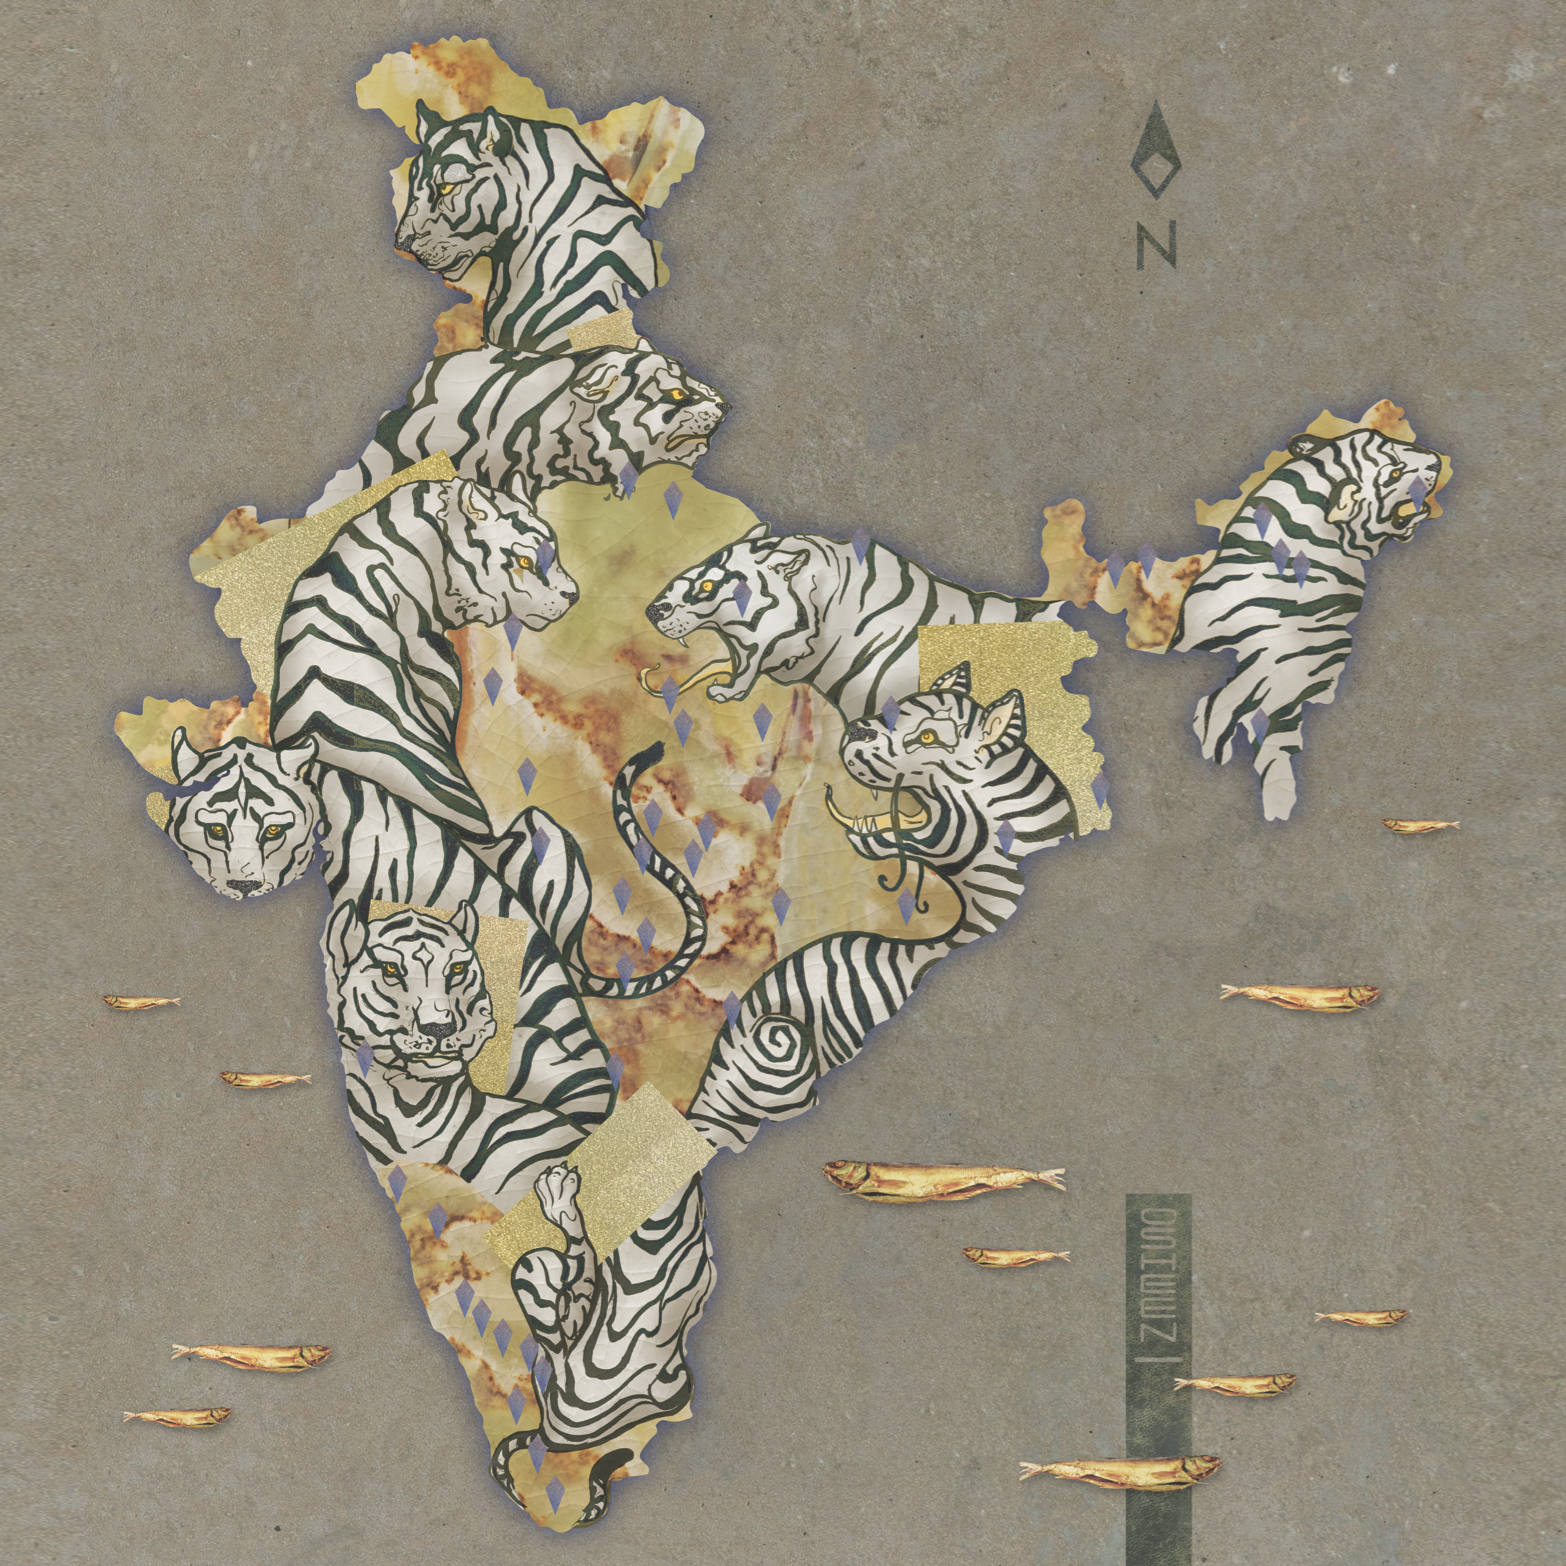 "1973 :  ""Project Tiger - launched by the Government of India in April 1973 as an effort to preserve and protect the royal animal, a few months after this majestic beast was declared the National Animal of India!  The Tiger as our National Animal symbolizes the power, strength, beauty, elegance, alertness, intelligence and endurance of the nation. And thus, it's symbolic and existential significance was realised in the year 1973. I would like to depict this through my art."" ~  Ishaan Bharat"